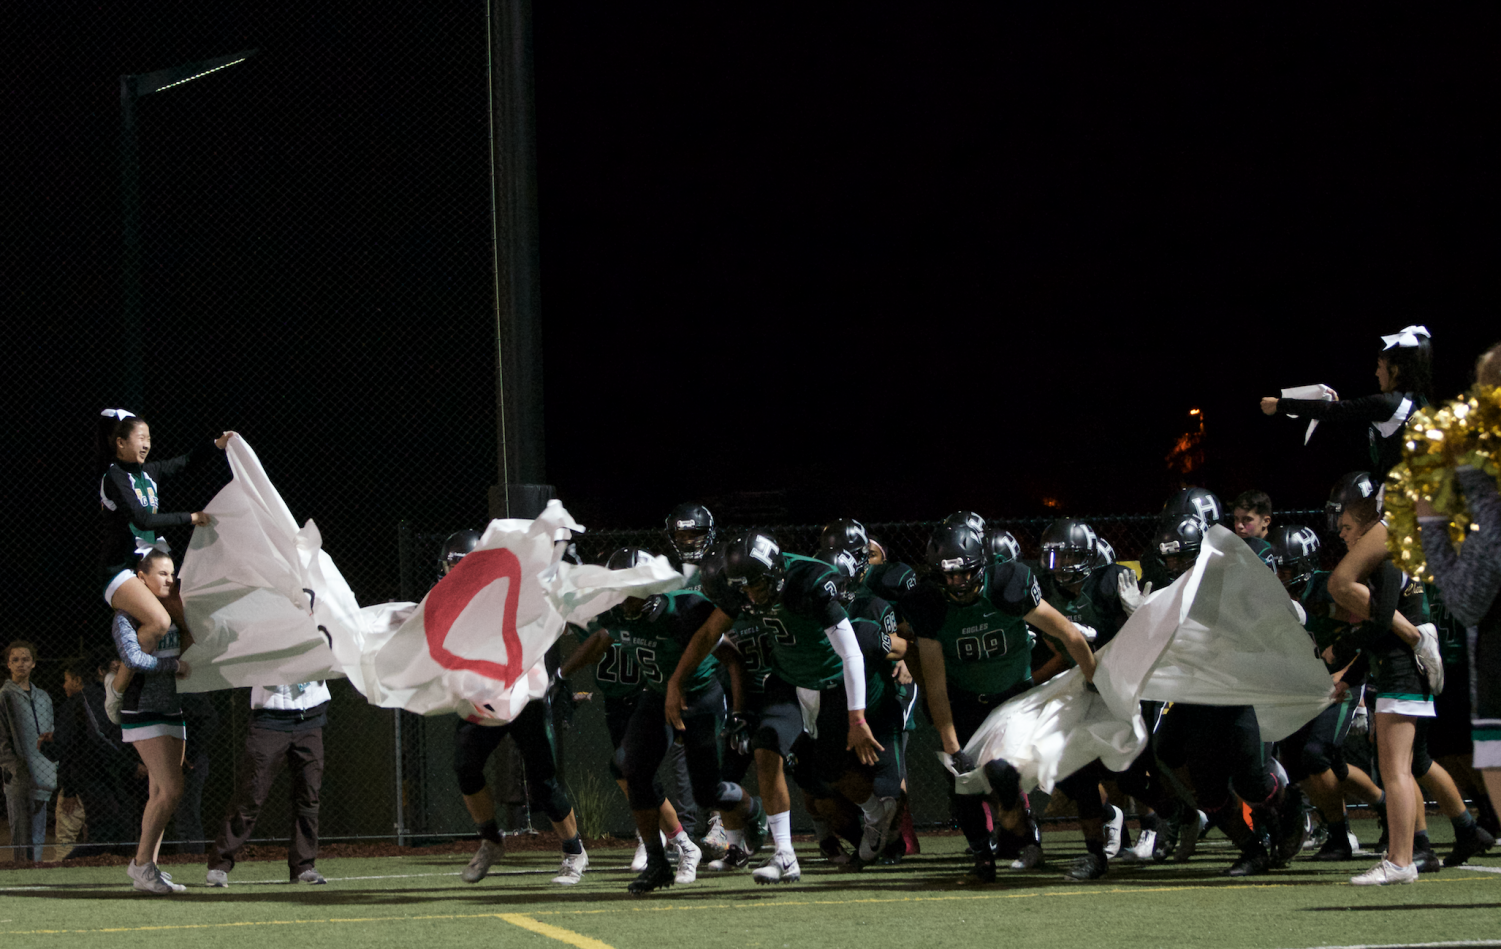 The varsity football team breaks through the poster after halftime. The team is still undefeated after their win against Lindhurst.